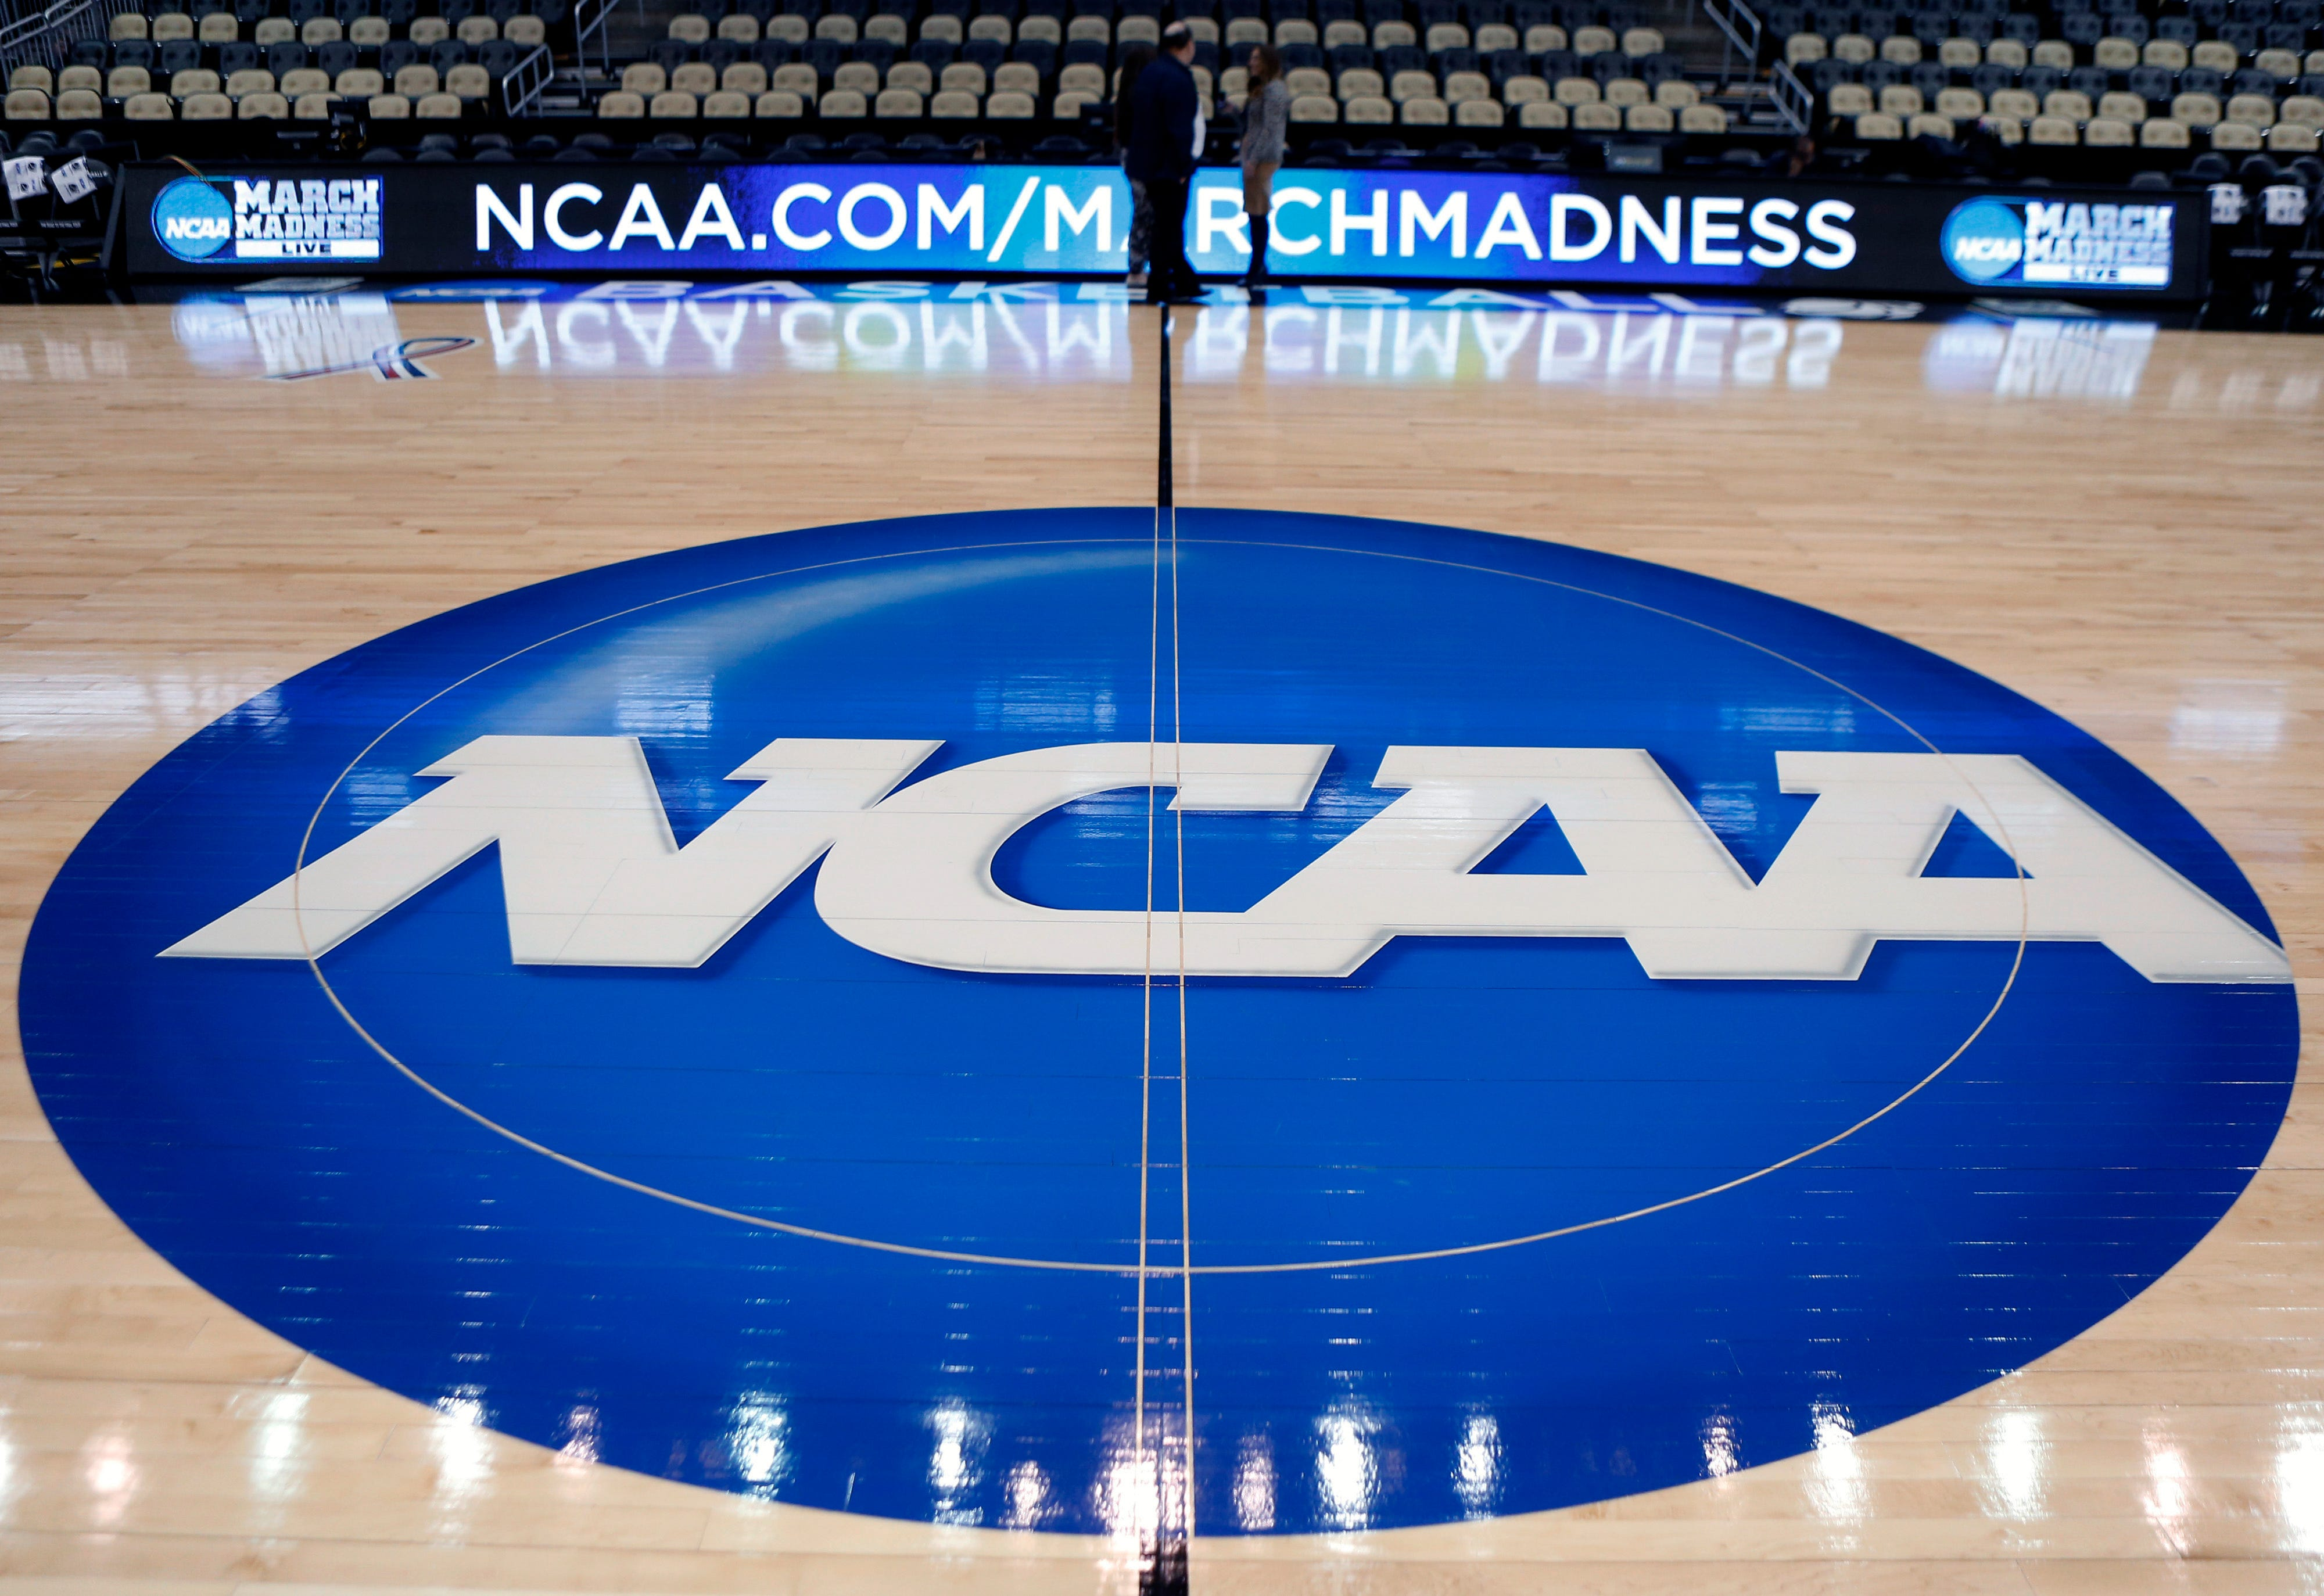 The 2021 NCAA tournament will be in one centralized location